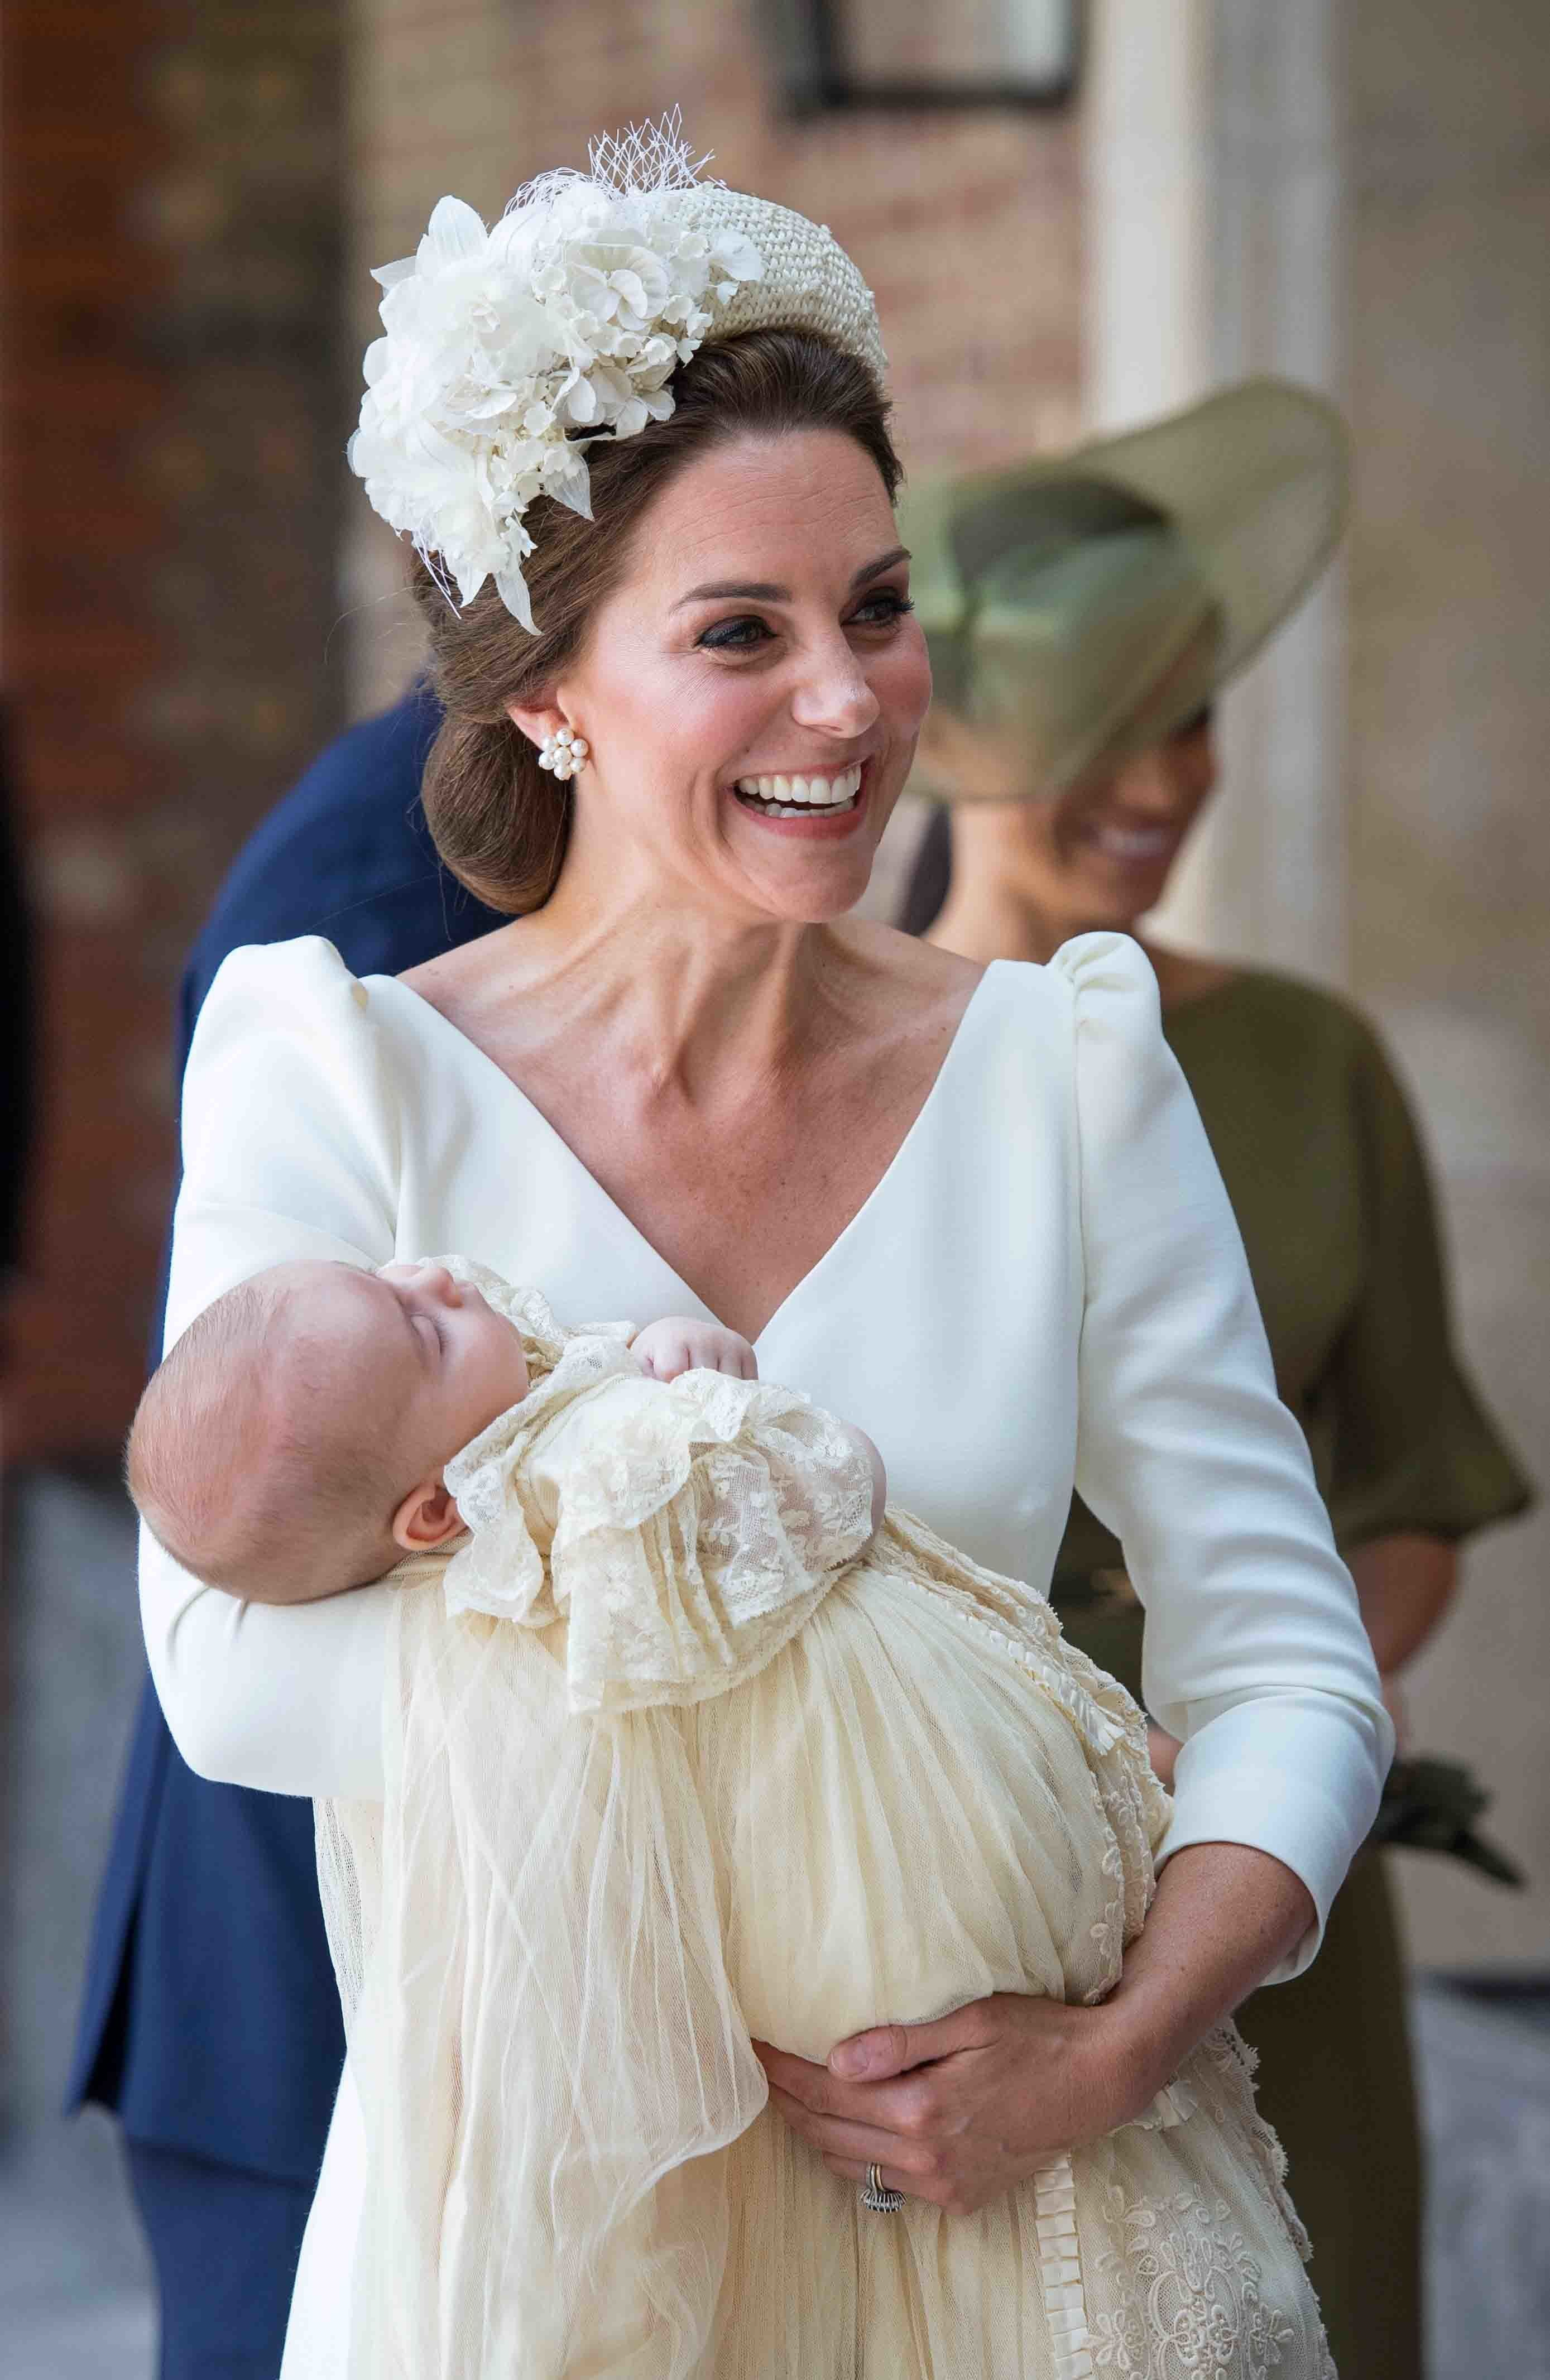 Britain's Catherine, Duchess of Cambridge holds Britain's Prince Louis of Cambridge on their arrival for his christening service at the Chapel Royal, St James's Palace, London on July 9, 2018. (Photo by Dominic Lipinski / POOL / AFP)        (Photo credit should read DOMINIC LIPINSKI/AFP/Getty Images)